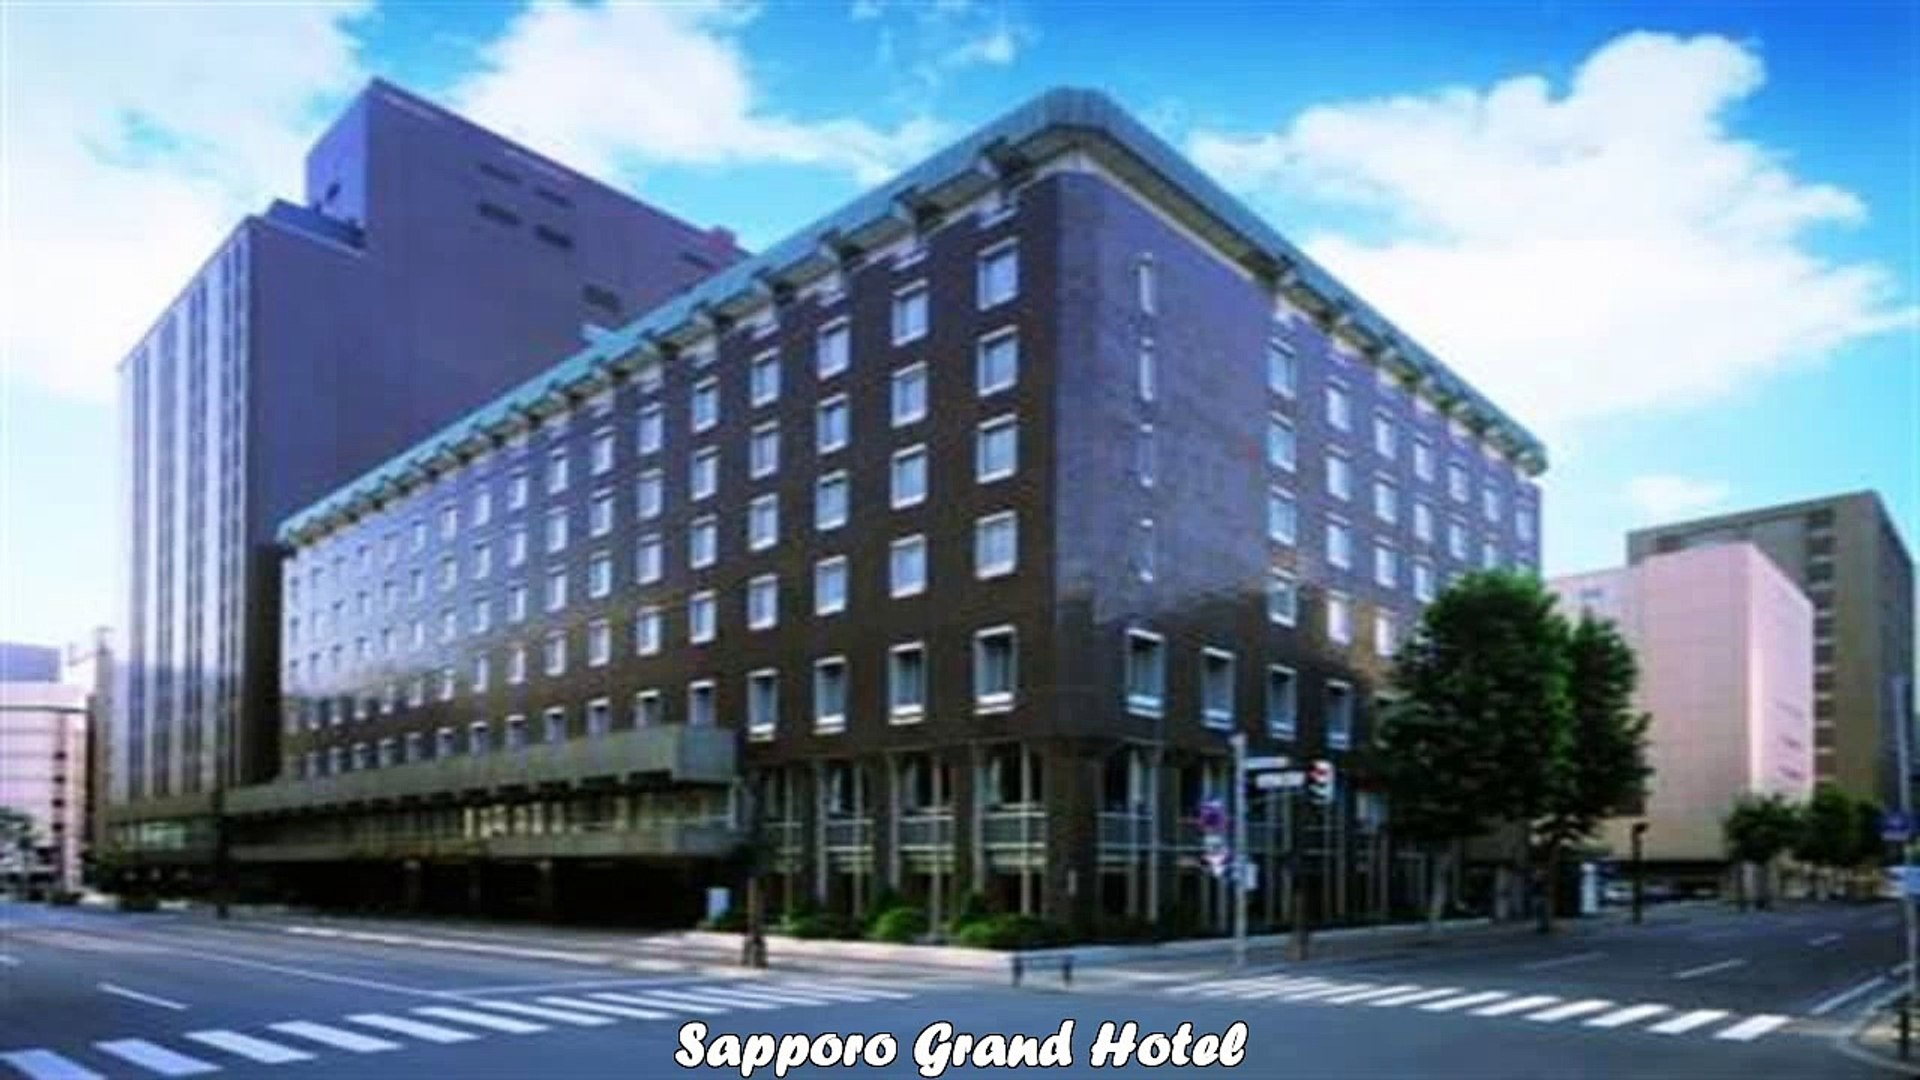 Hotels In Sapporo Sapporo Grand Hotel Japan Video Dailymotion